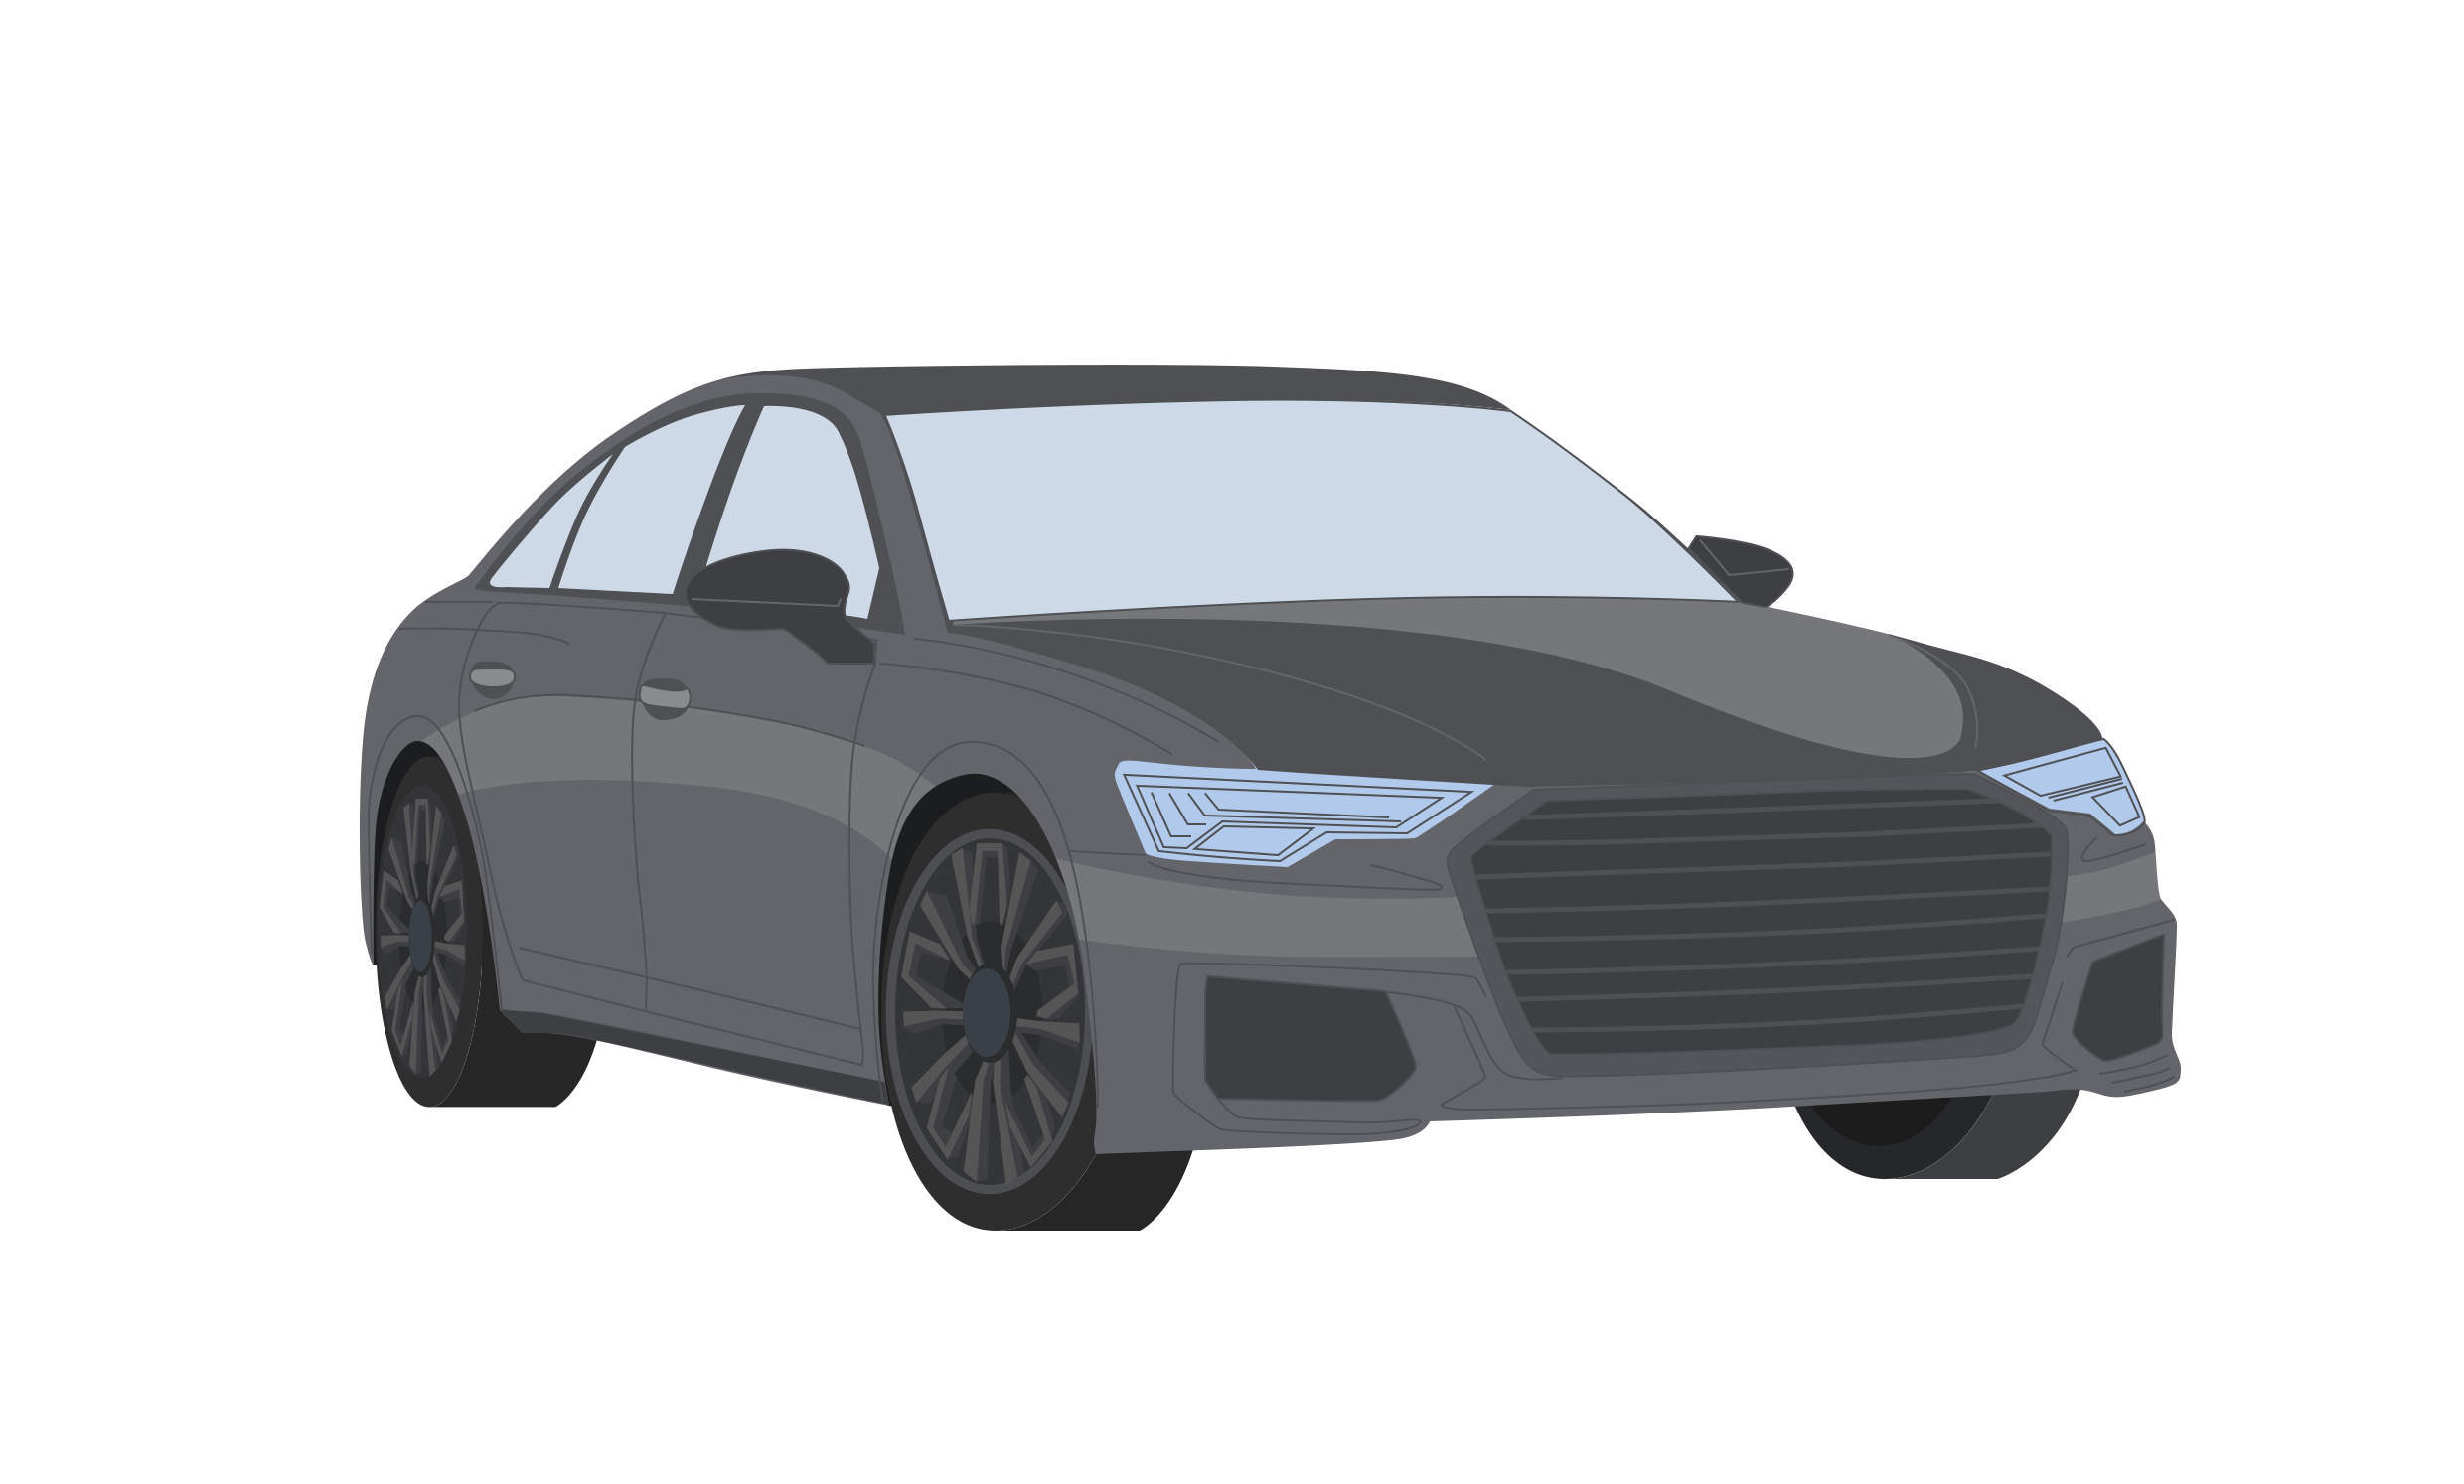 Pickme | Cab and Taxi Booking | Fastest, Safest and Smartest